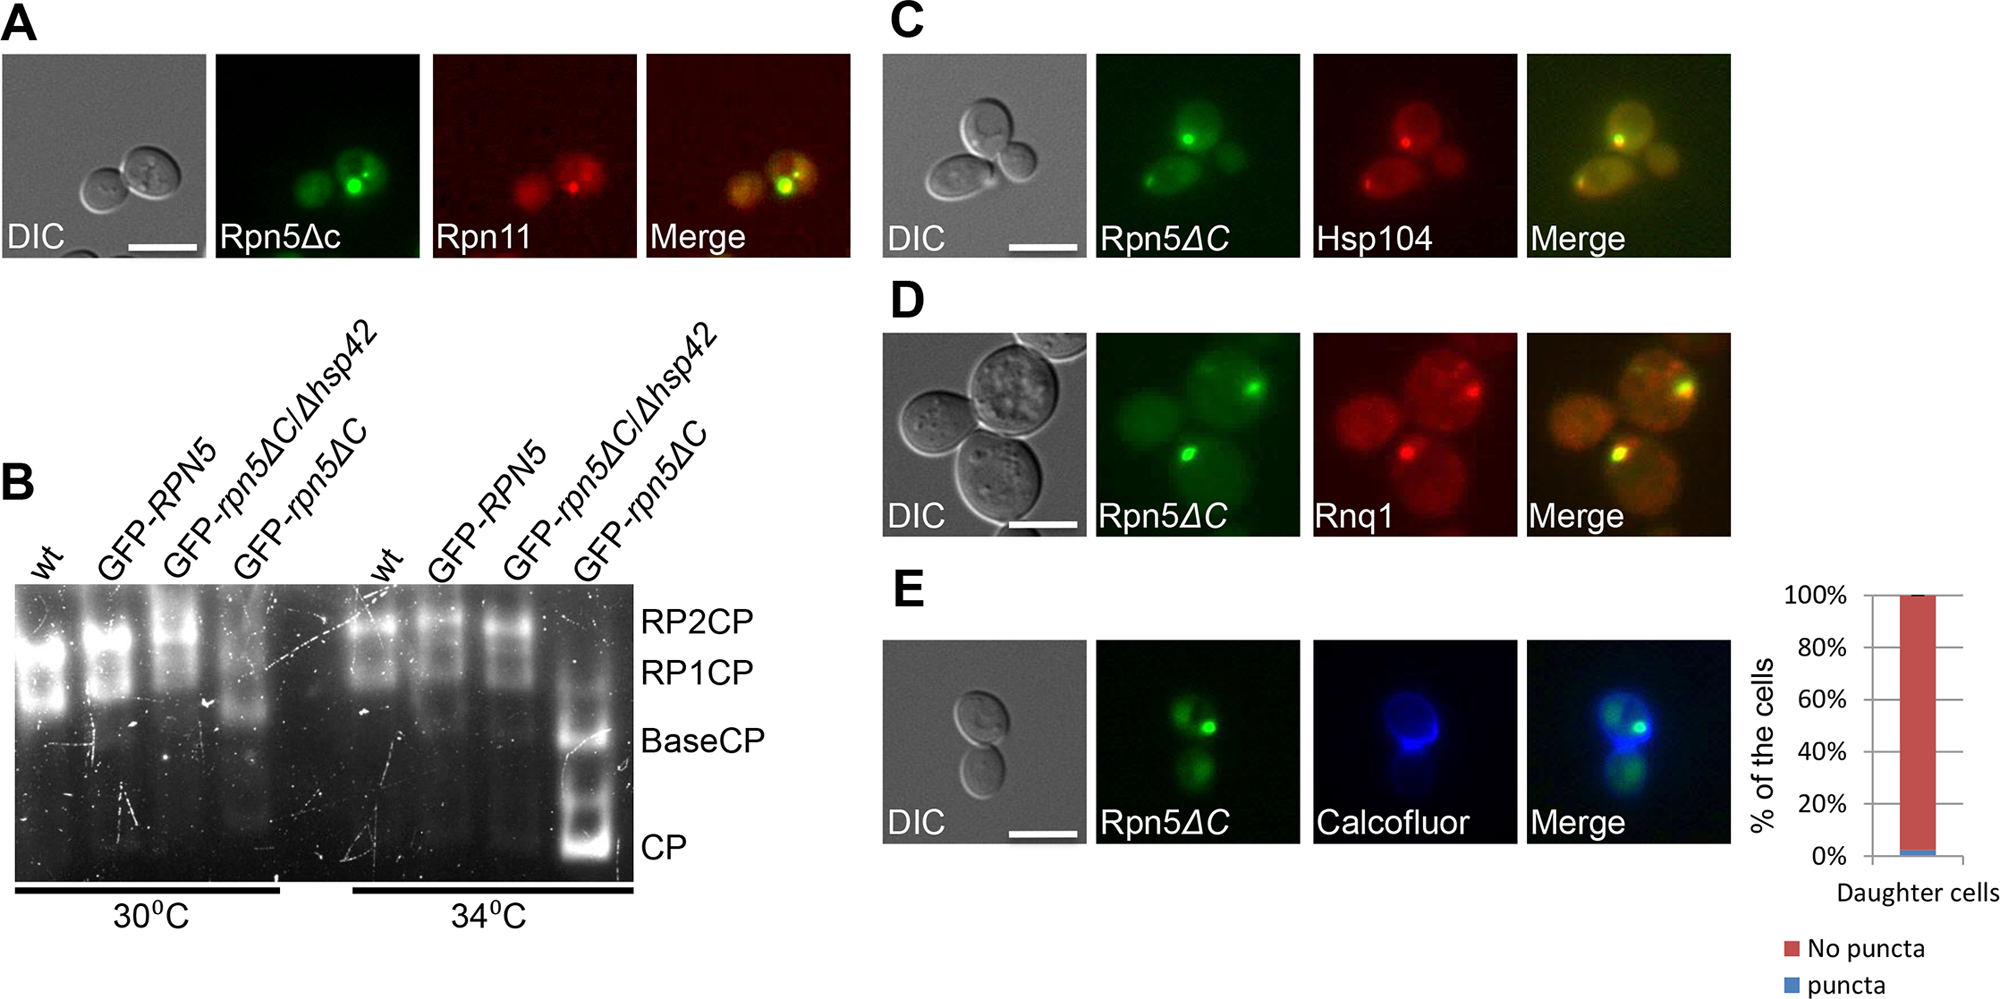 (A) The RP subunit Rpn11-RFP co-localizes with GFP-Rpn5ΔC. Logarithmically growing cells containing Rpn11 fused to RFP (Rpn11-RFP) and GFP-Rpn5ΔC (YSB1090) where grown in galactose containing medium at 30°C and shifted to 34°C for 3 hrs.